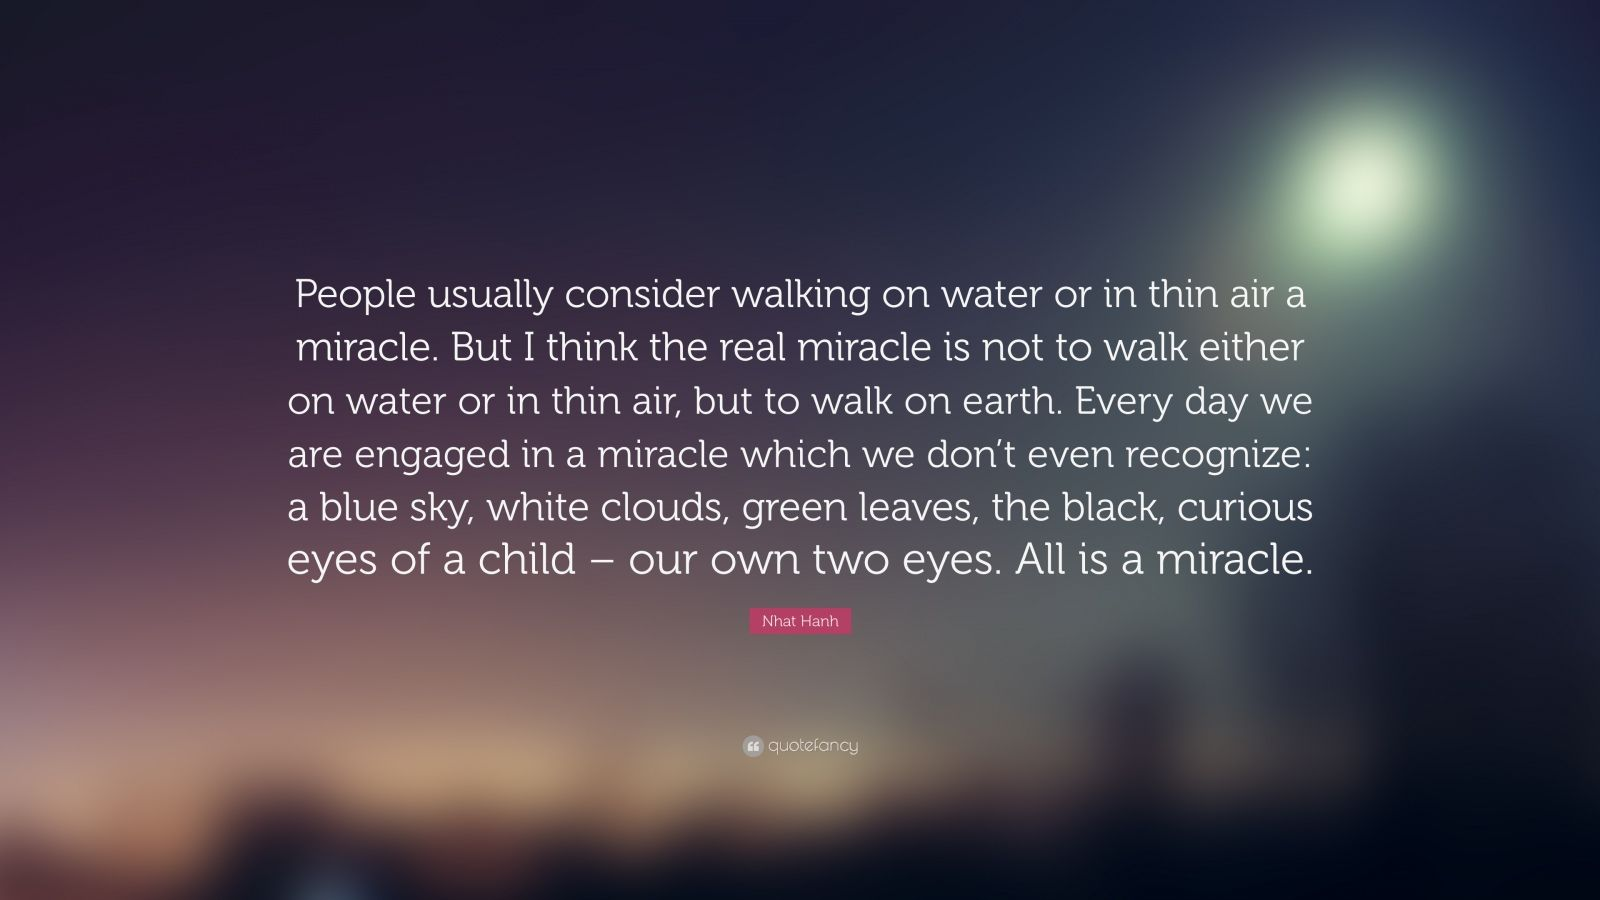 """Nhat Hanh Quote: """"People usually consider walking on water or in thin air a miracle. But I think the real miracle is not to walk either on water or in thin air, but to walk on earth. Every day we are engaged in a miracle which we don't even recognize: a blue sky, white clouds, green leaves, the black, curious eyes of a child – our own two eyes. All is a miracle."""""""